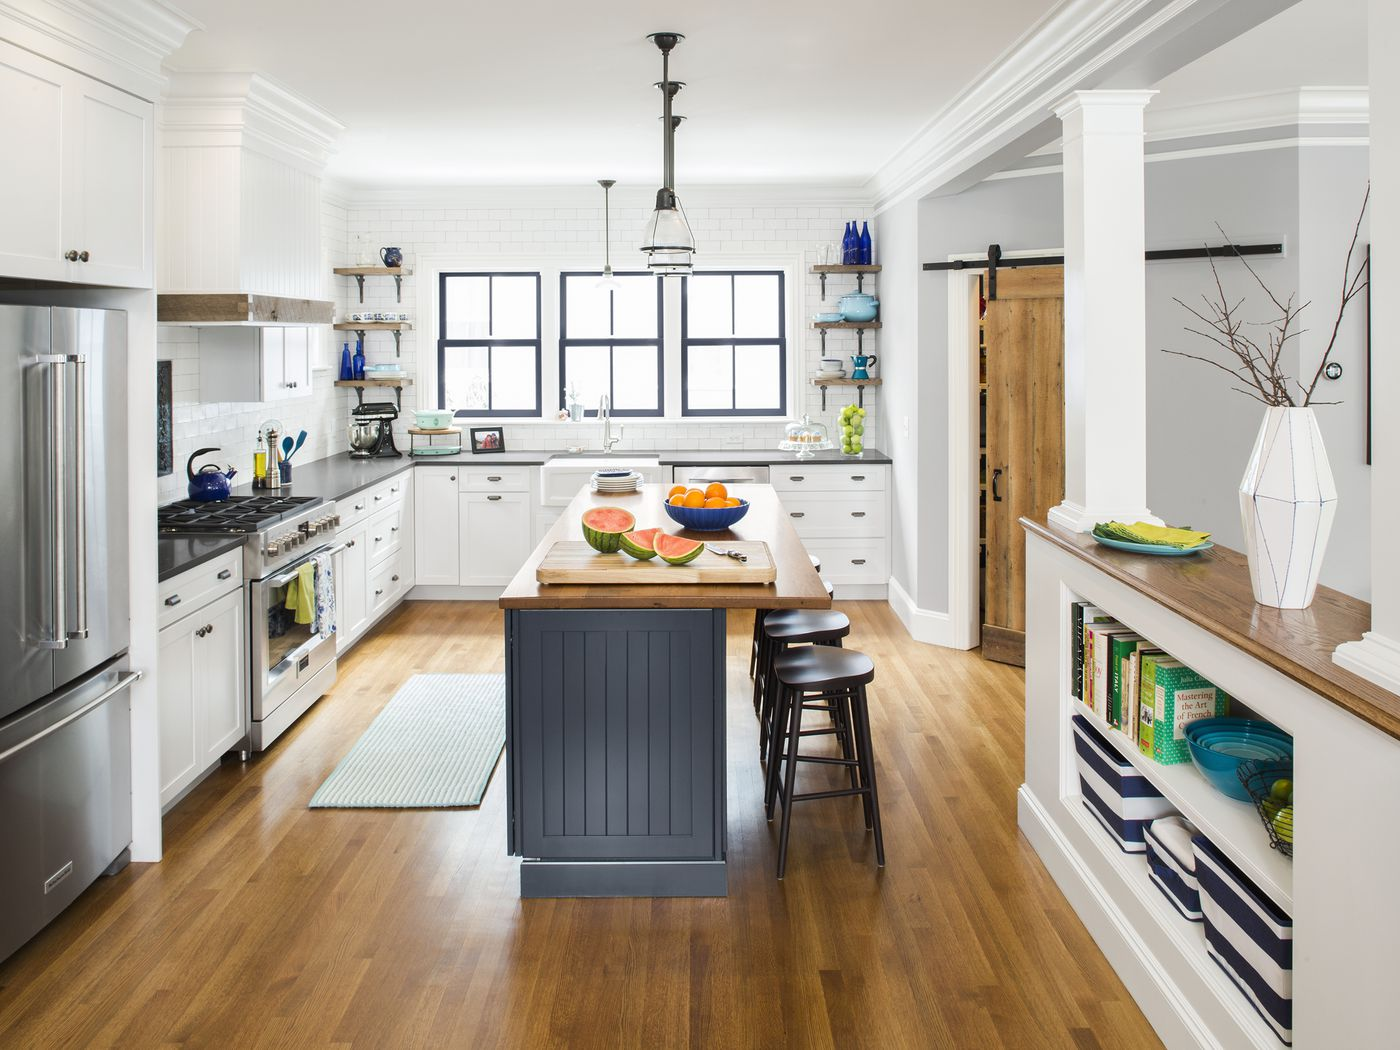 Remodeling Your Kitchen Read This This Old House